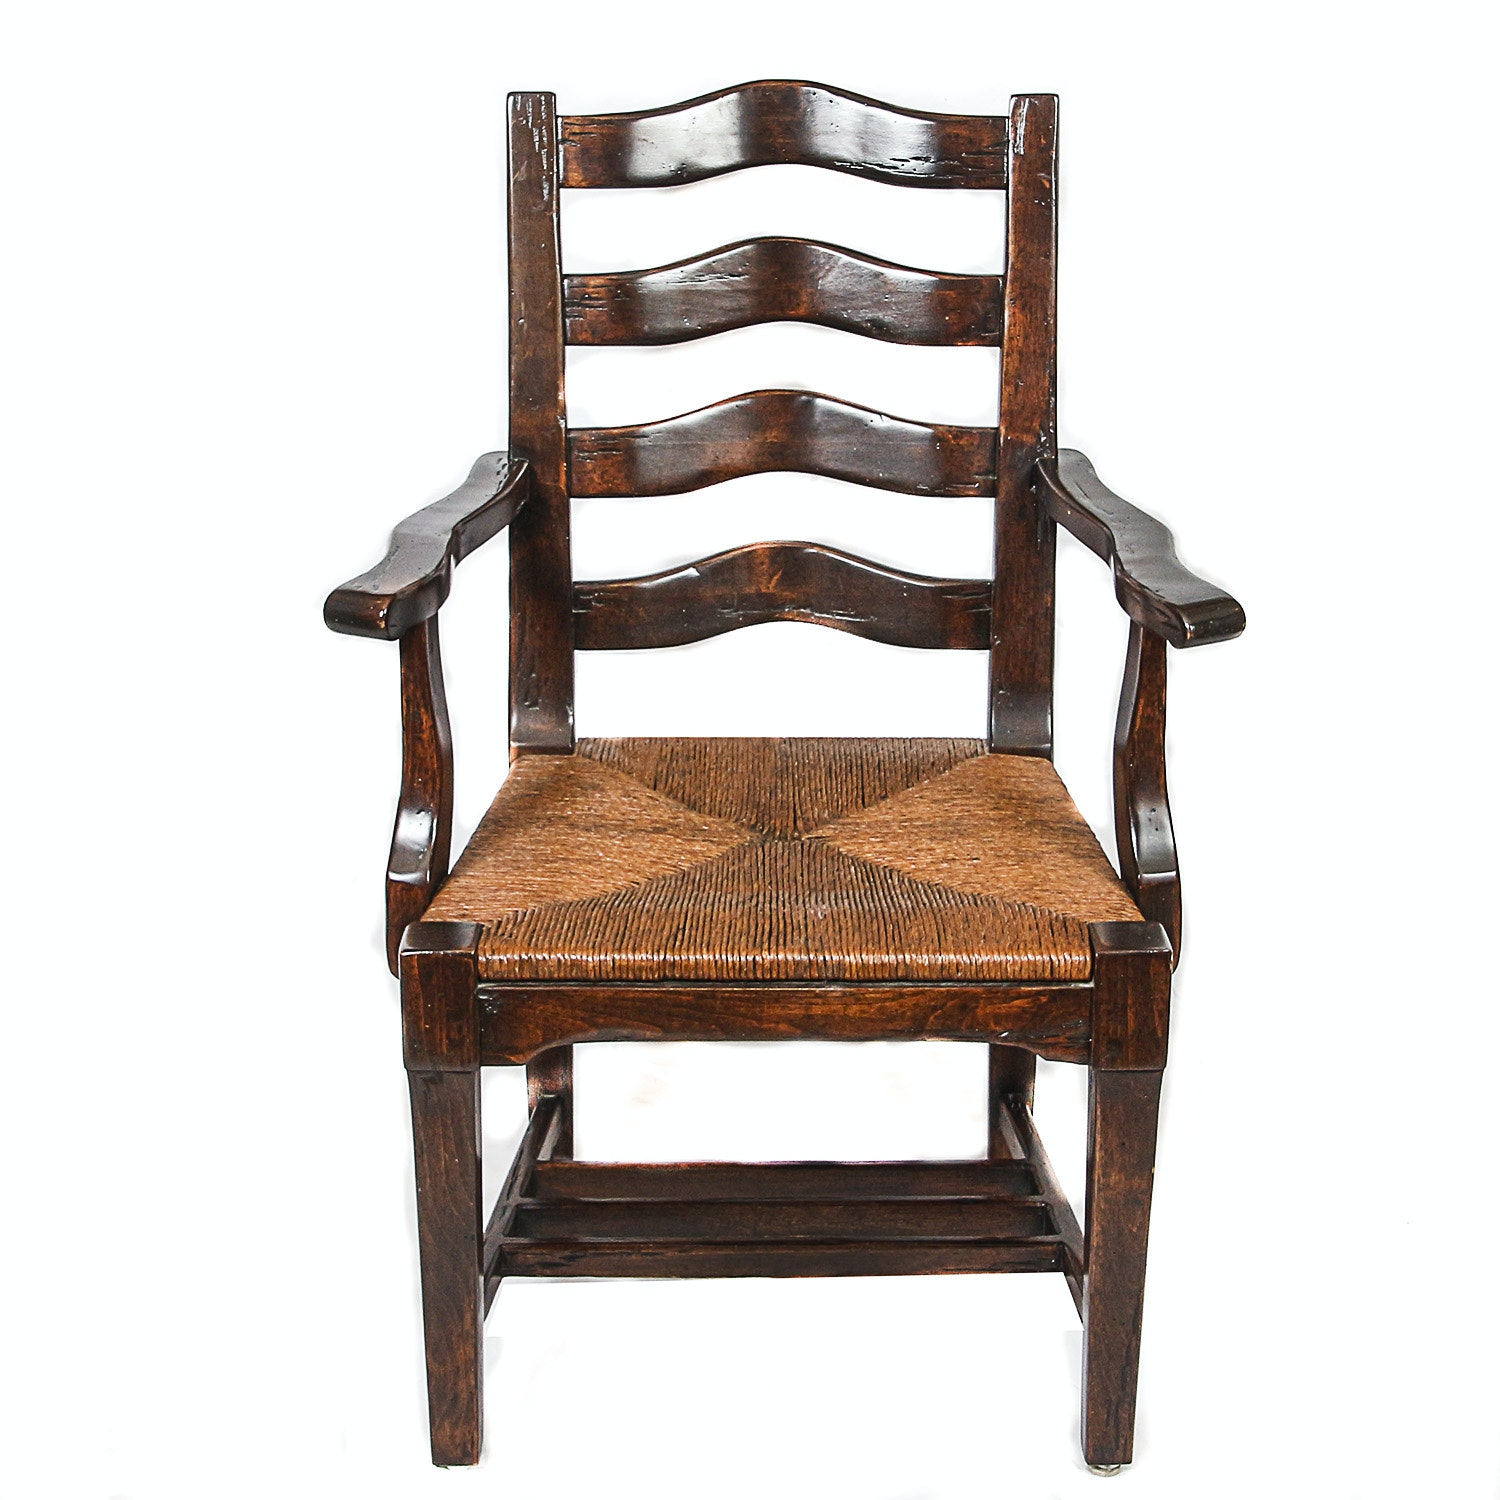 Ladder Back Armchairs with Woven Seats